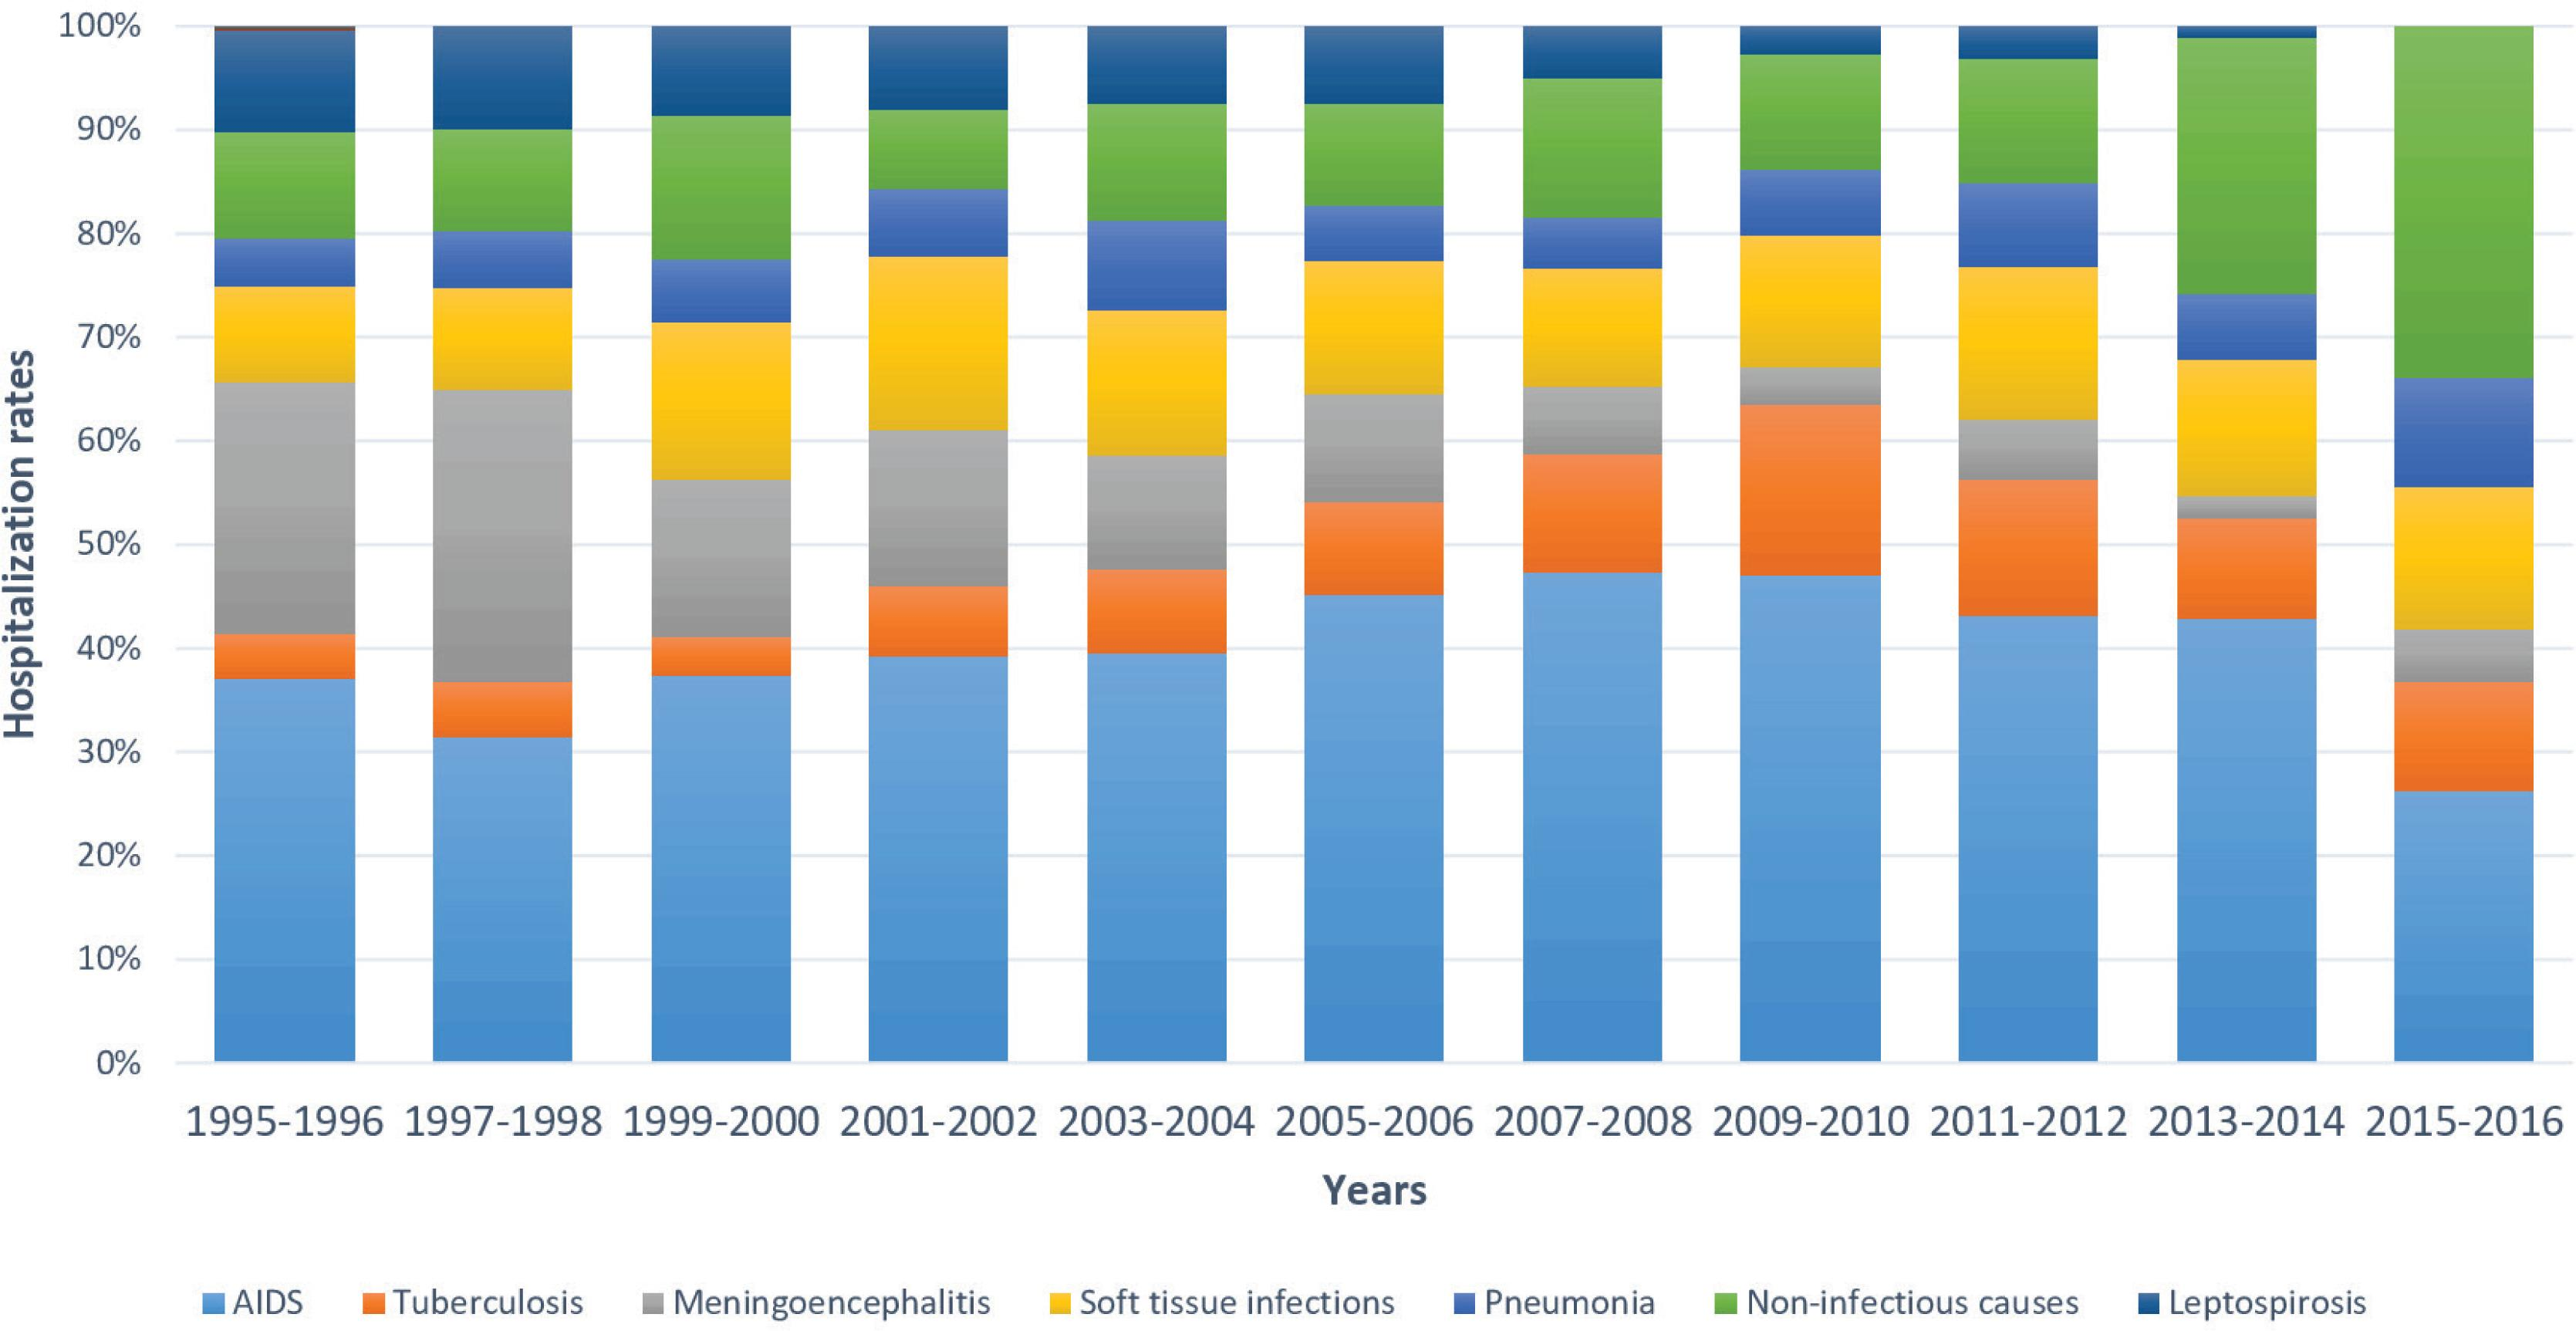 Main causes of hospital admissions over the years (1995-2016). Number of cases 3,319.